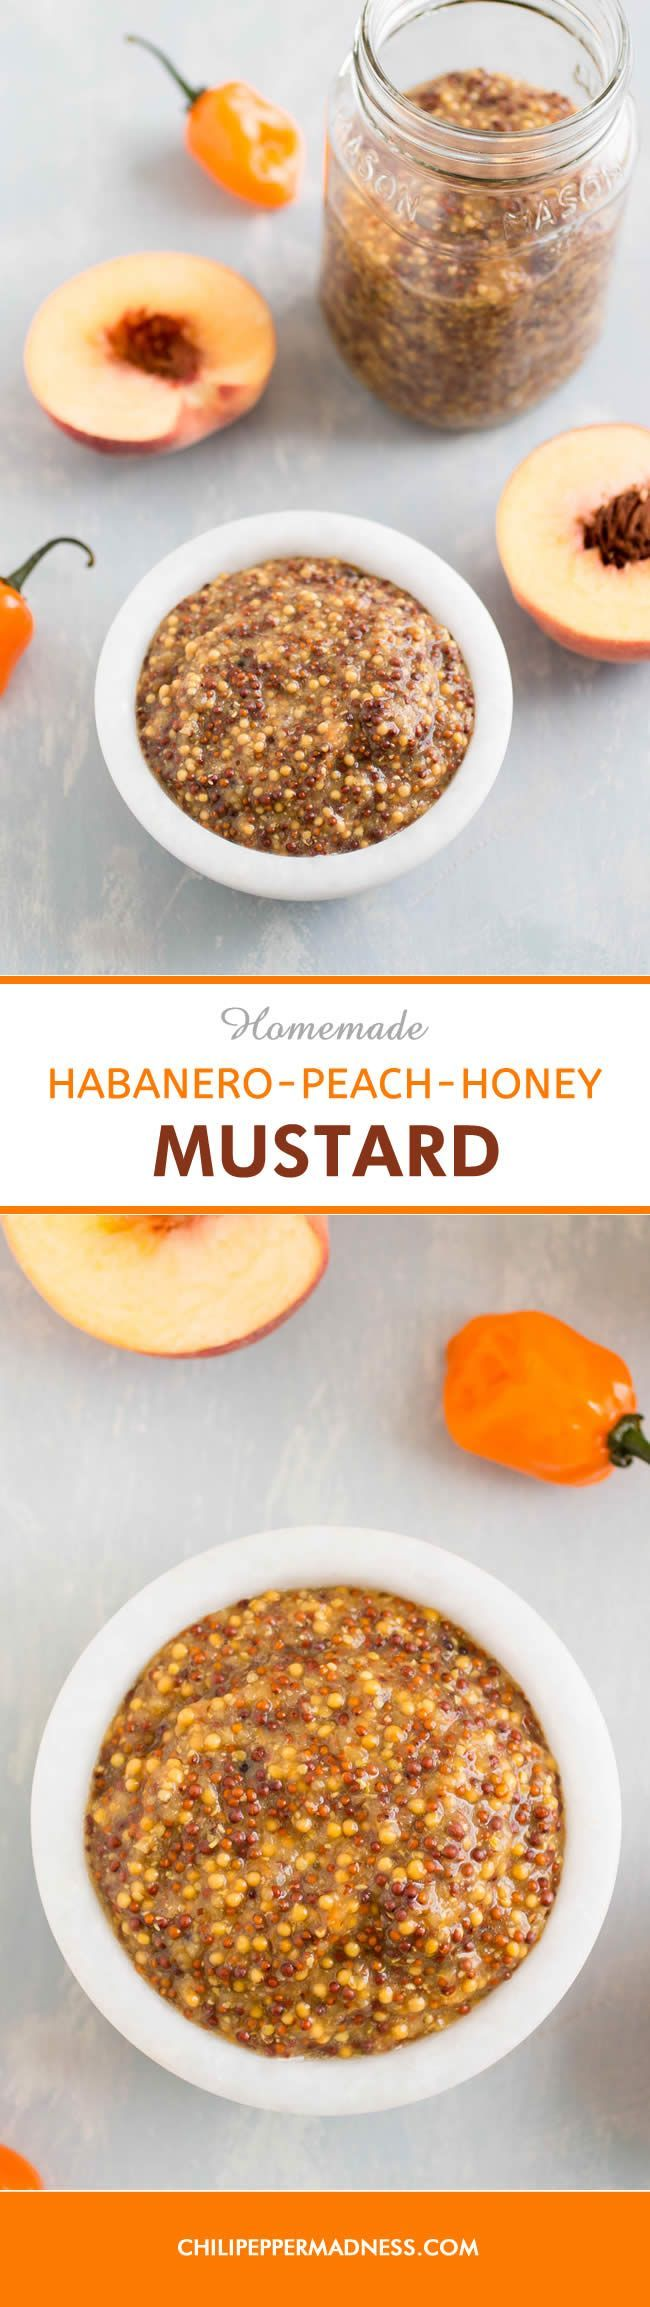 Homemade Habanero-Peach-Honey Mustard - Make your own homemade sweet and spicy mustard at home with this recipe, with fruity habanero peppers, sweet peach and honey. Homemade mustard is the only way to go. (Vegan Sauce Honey)